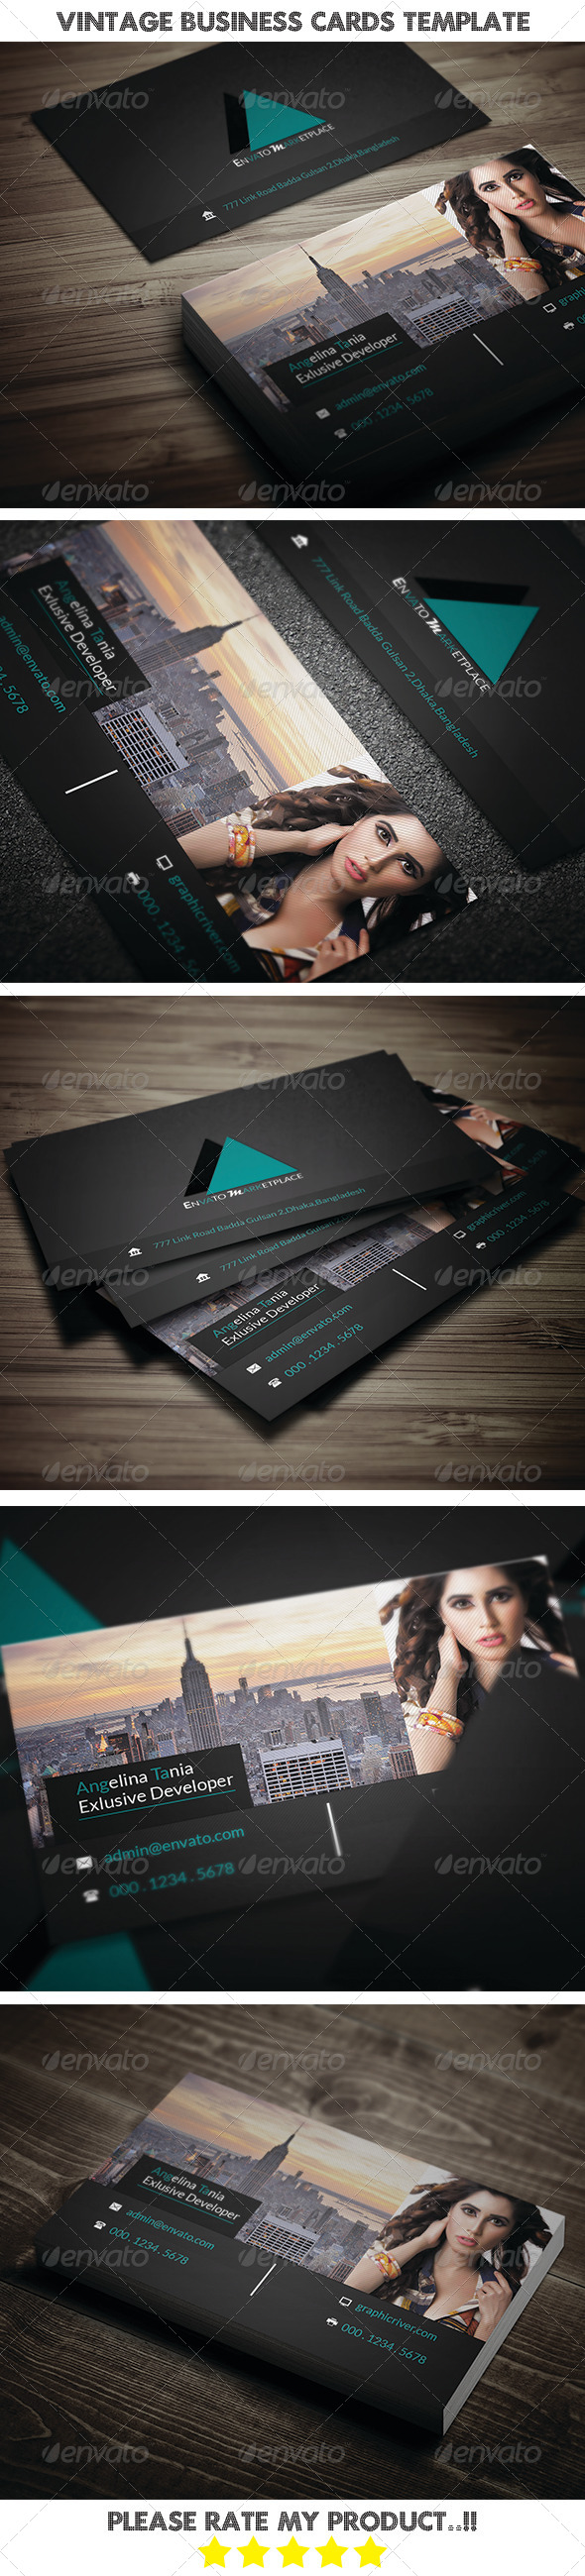 GraphicRiver Vintage Business Cards Template 8391279